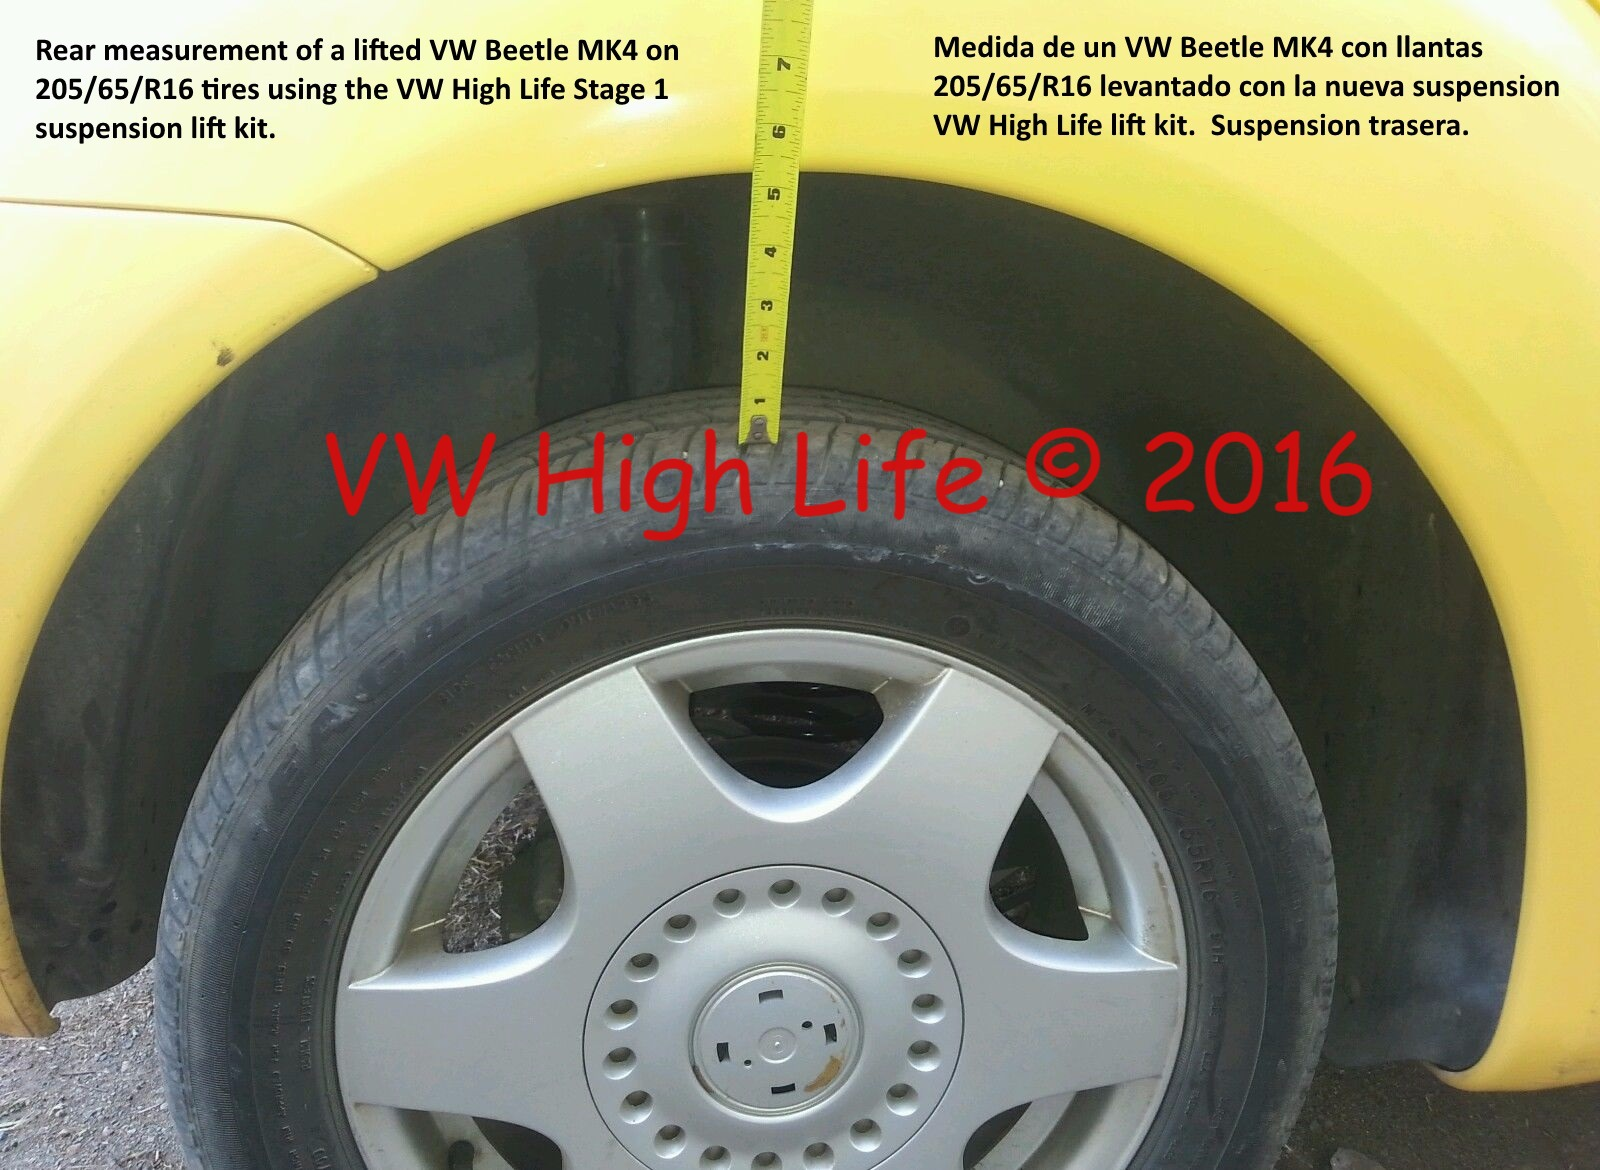 Kit Cars To Build Yourself In Usa: Suspension Lift Kit For VW Beetle MK4